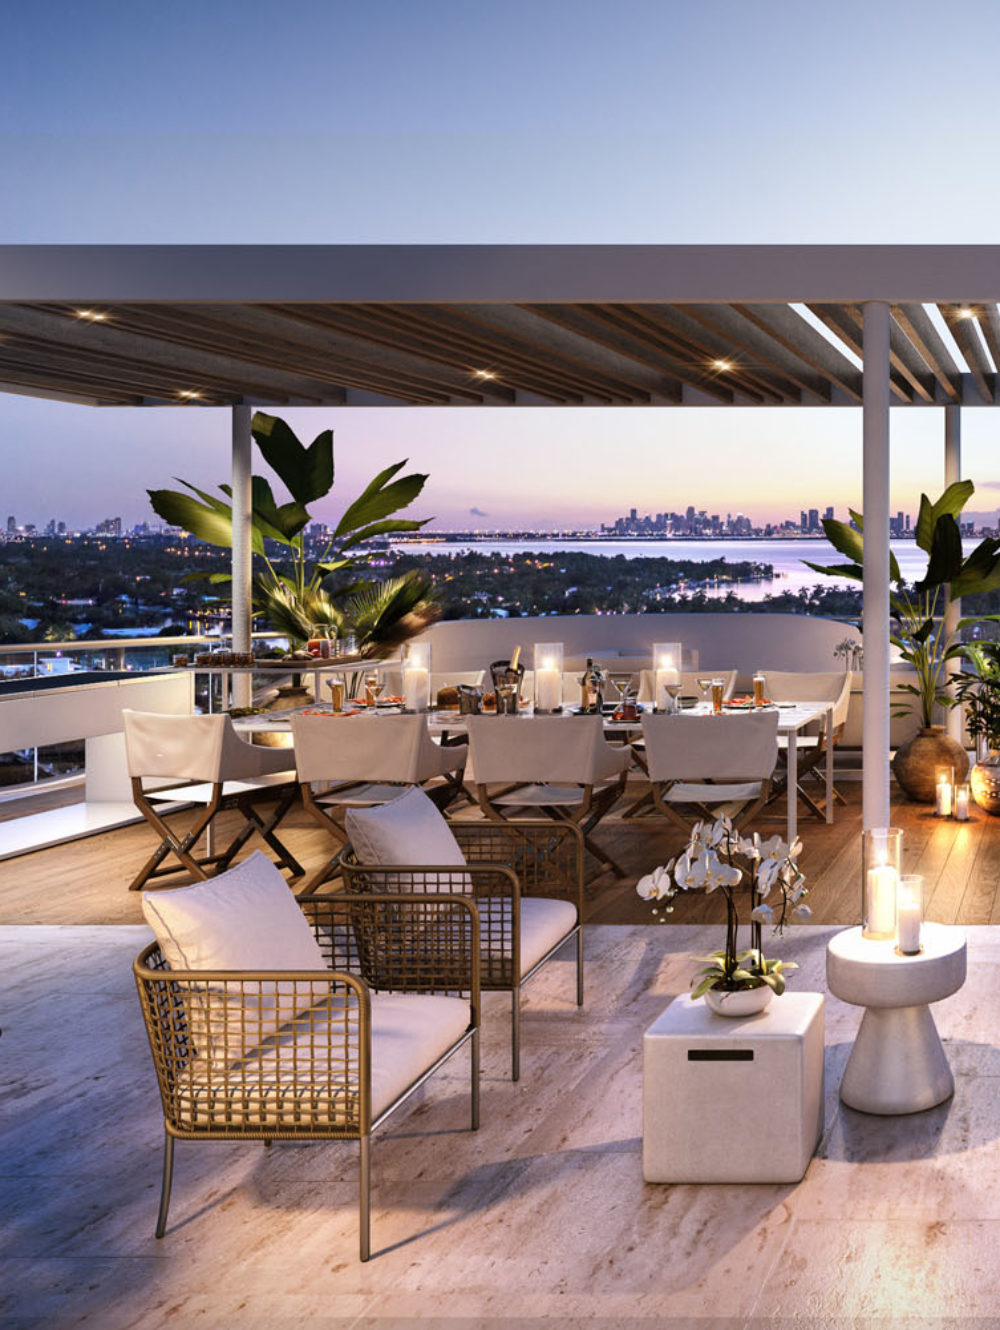 Miamicondosforsale_MonacoYachtClub_Exterior_Pool_OutdoorLounge_Amenities_Waterfront_Dusk